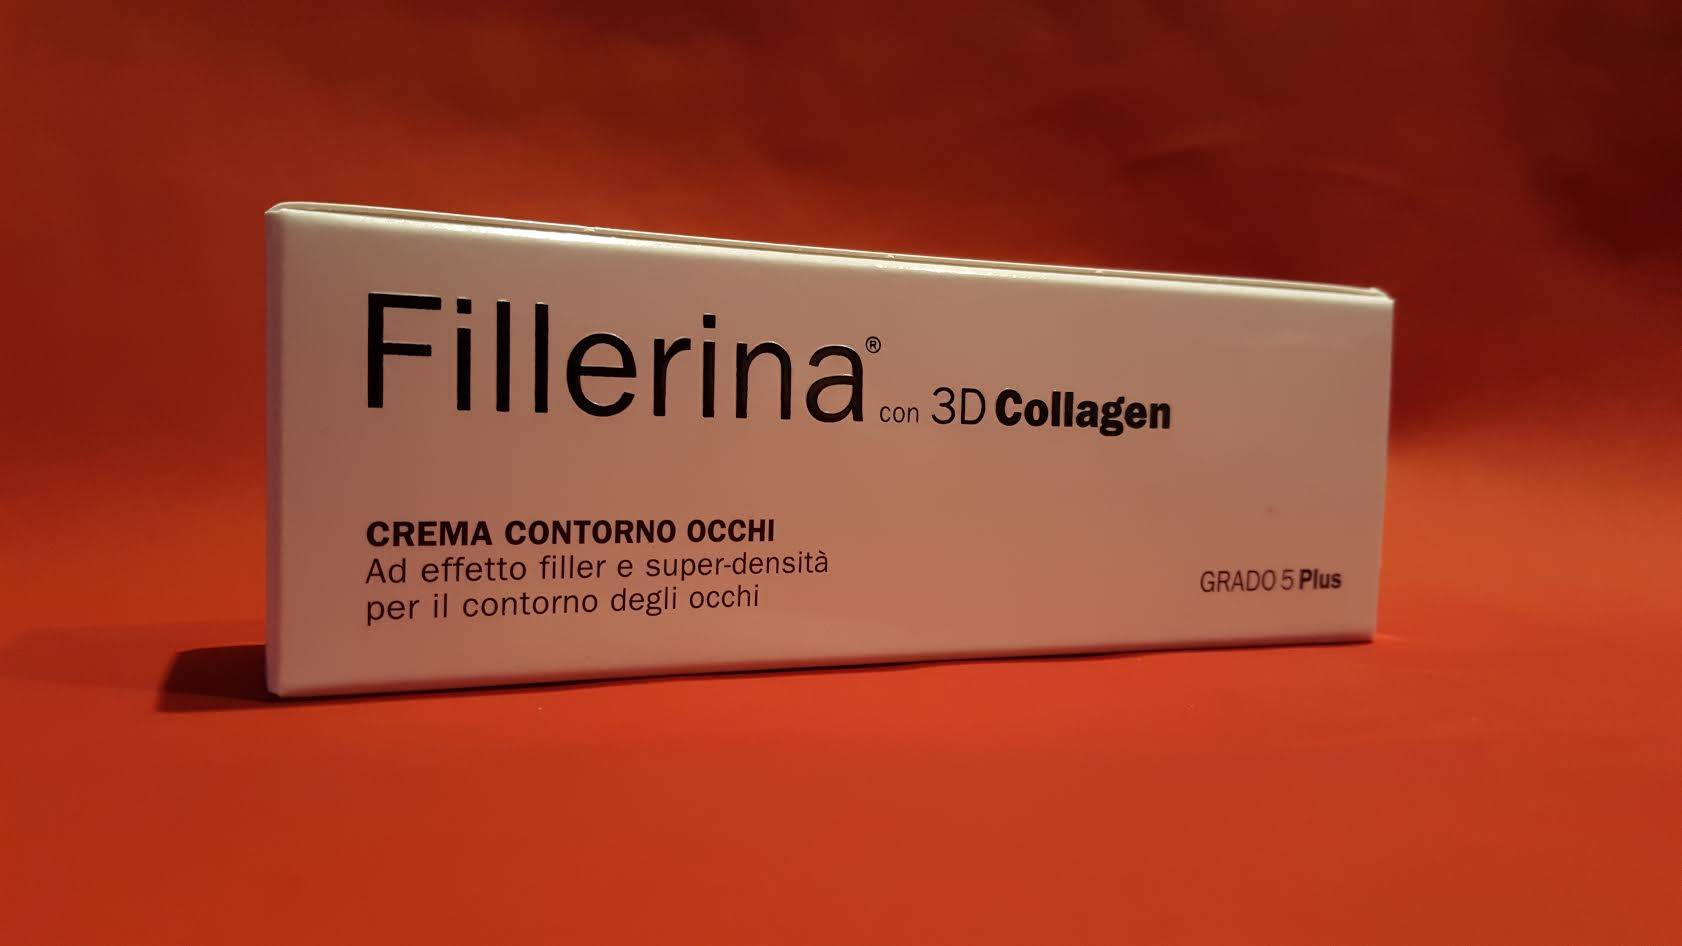 LABO Fillerina 3d Collagen Contorno Occhi Grado 5 Plus